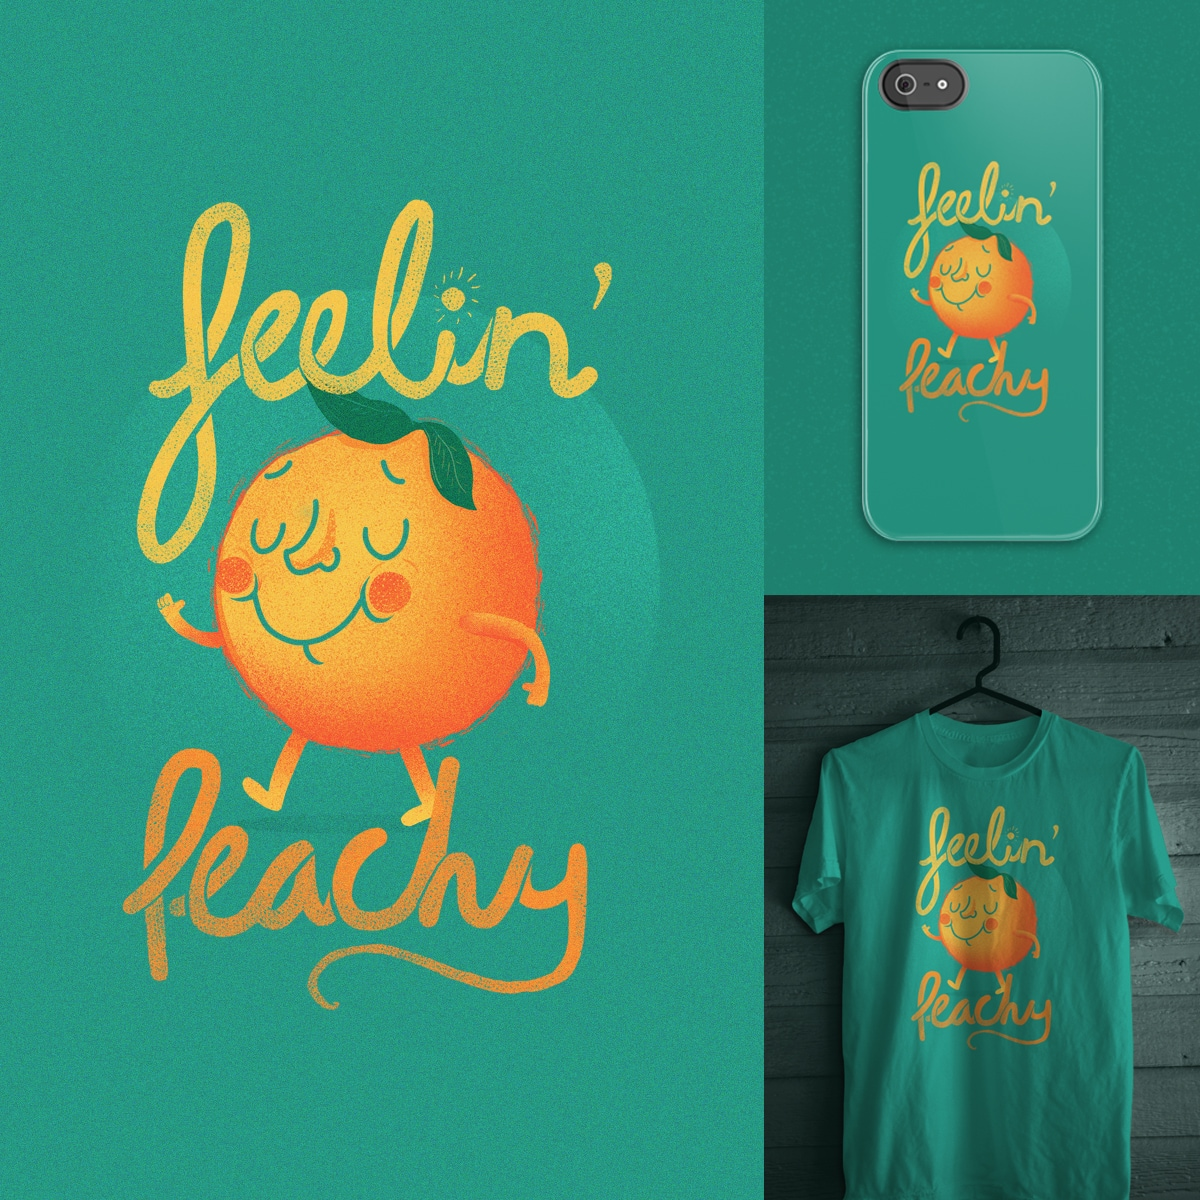 Feelin' Peachy by JIMDAHOUSECAT on Threadless